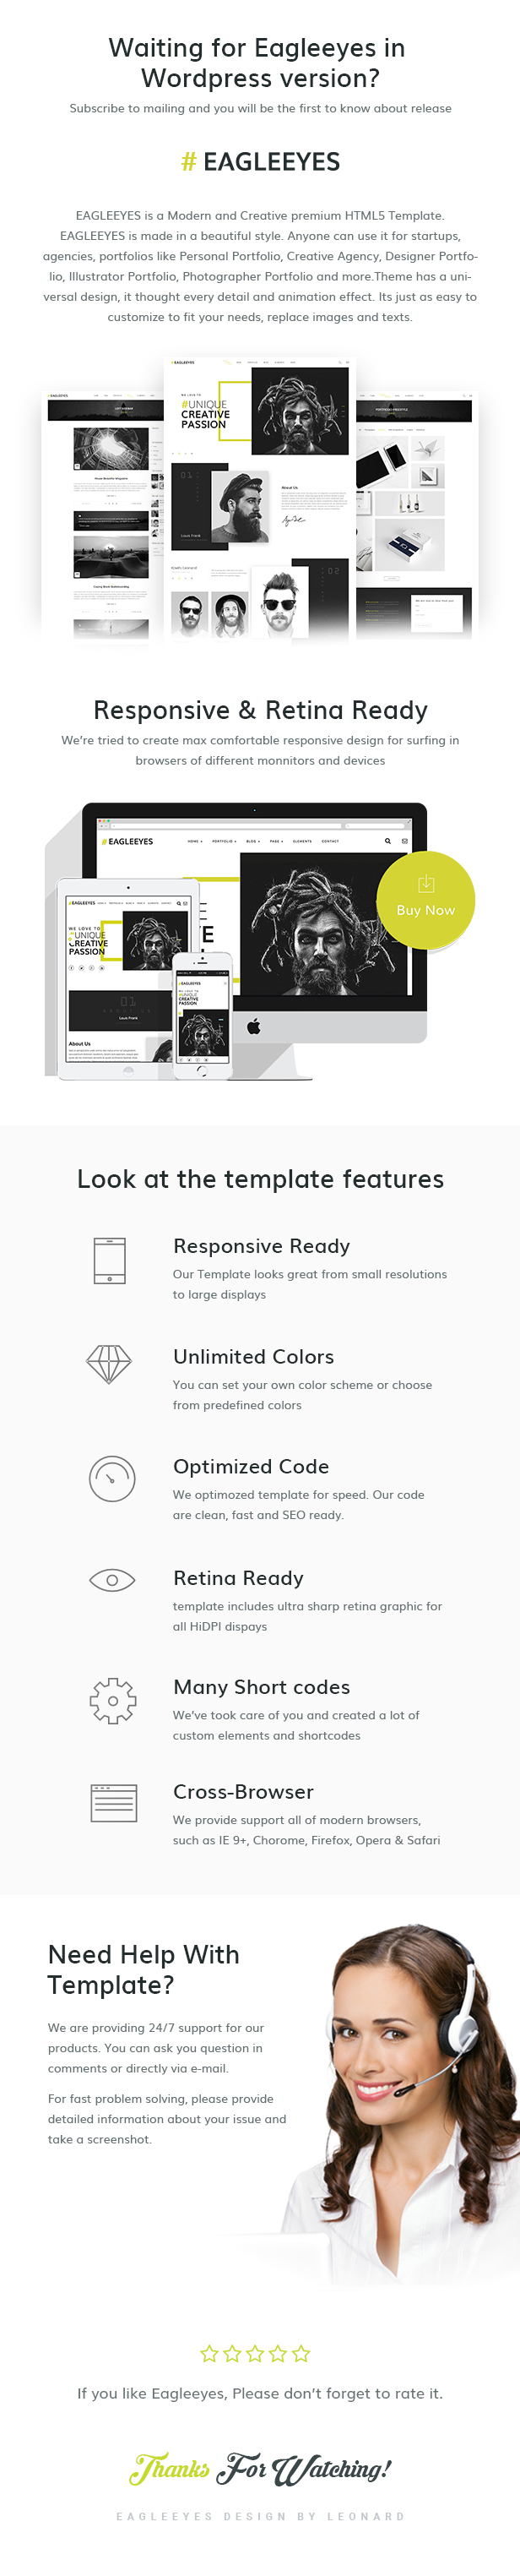 EAGLEEYES - Creative multipages and One page HTML5 Template - 2